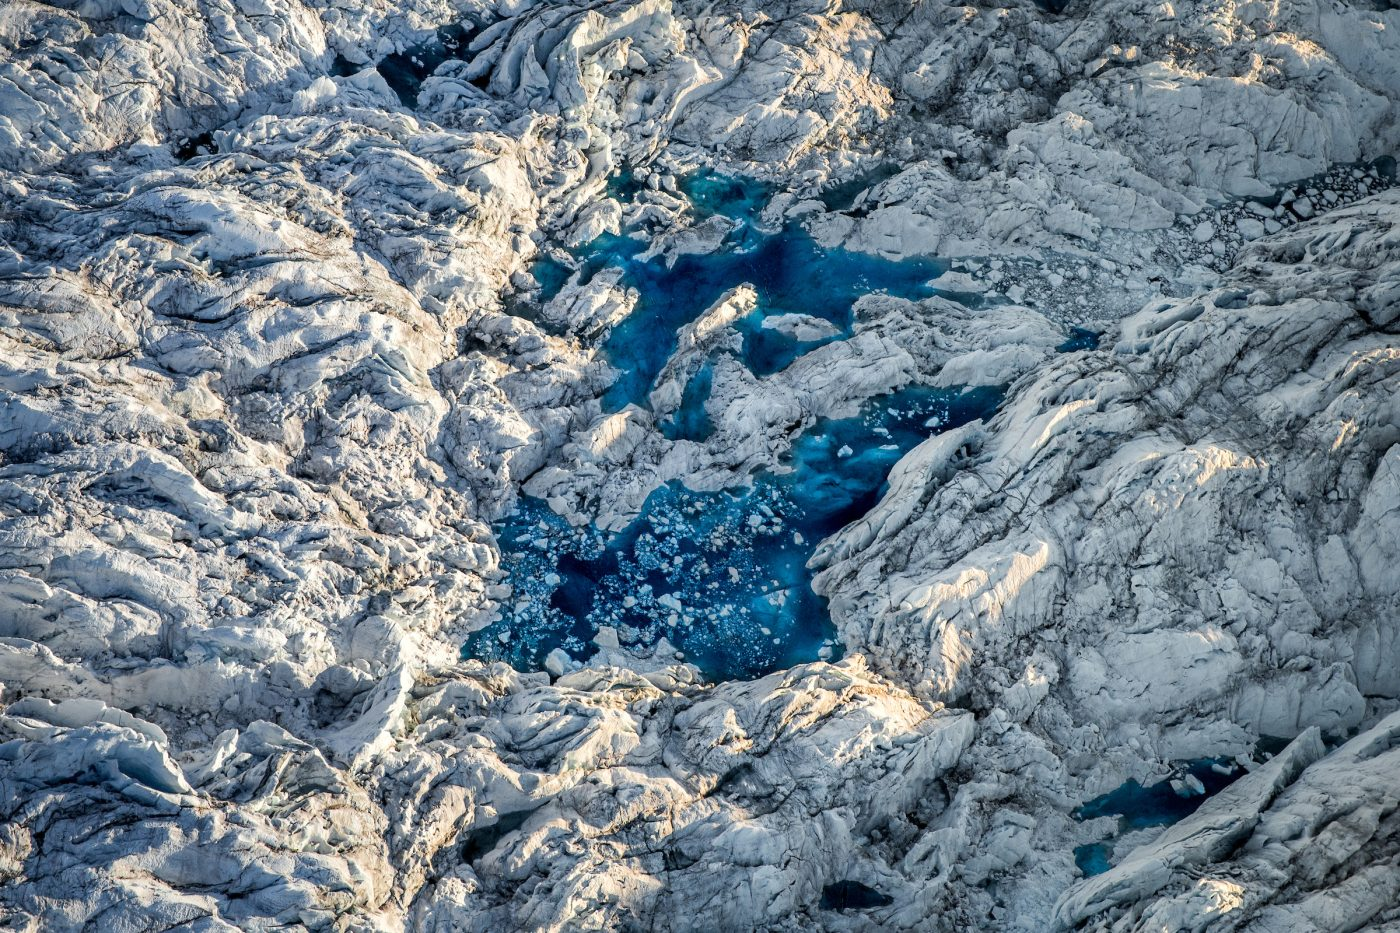 A meltwater lake on the Greenland ice sheet near Ilulissat ice fjord